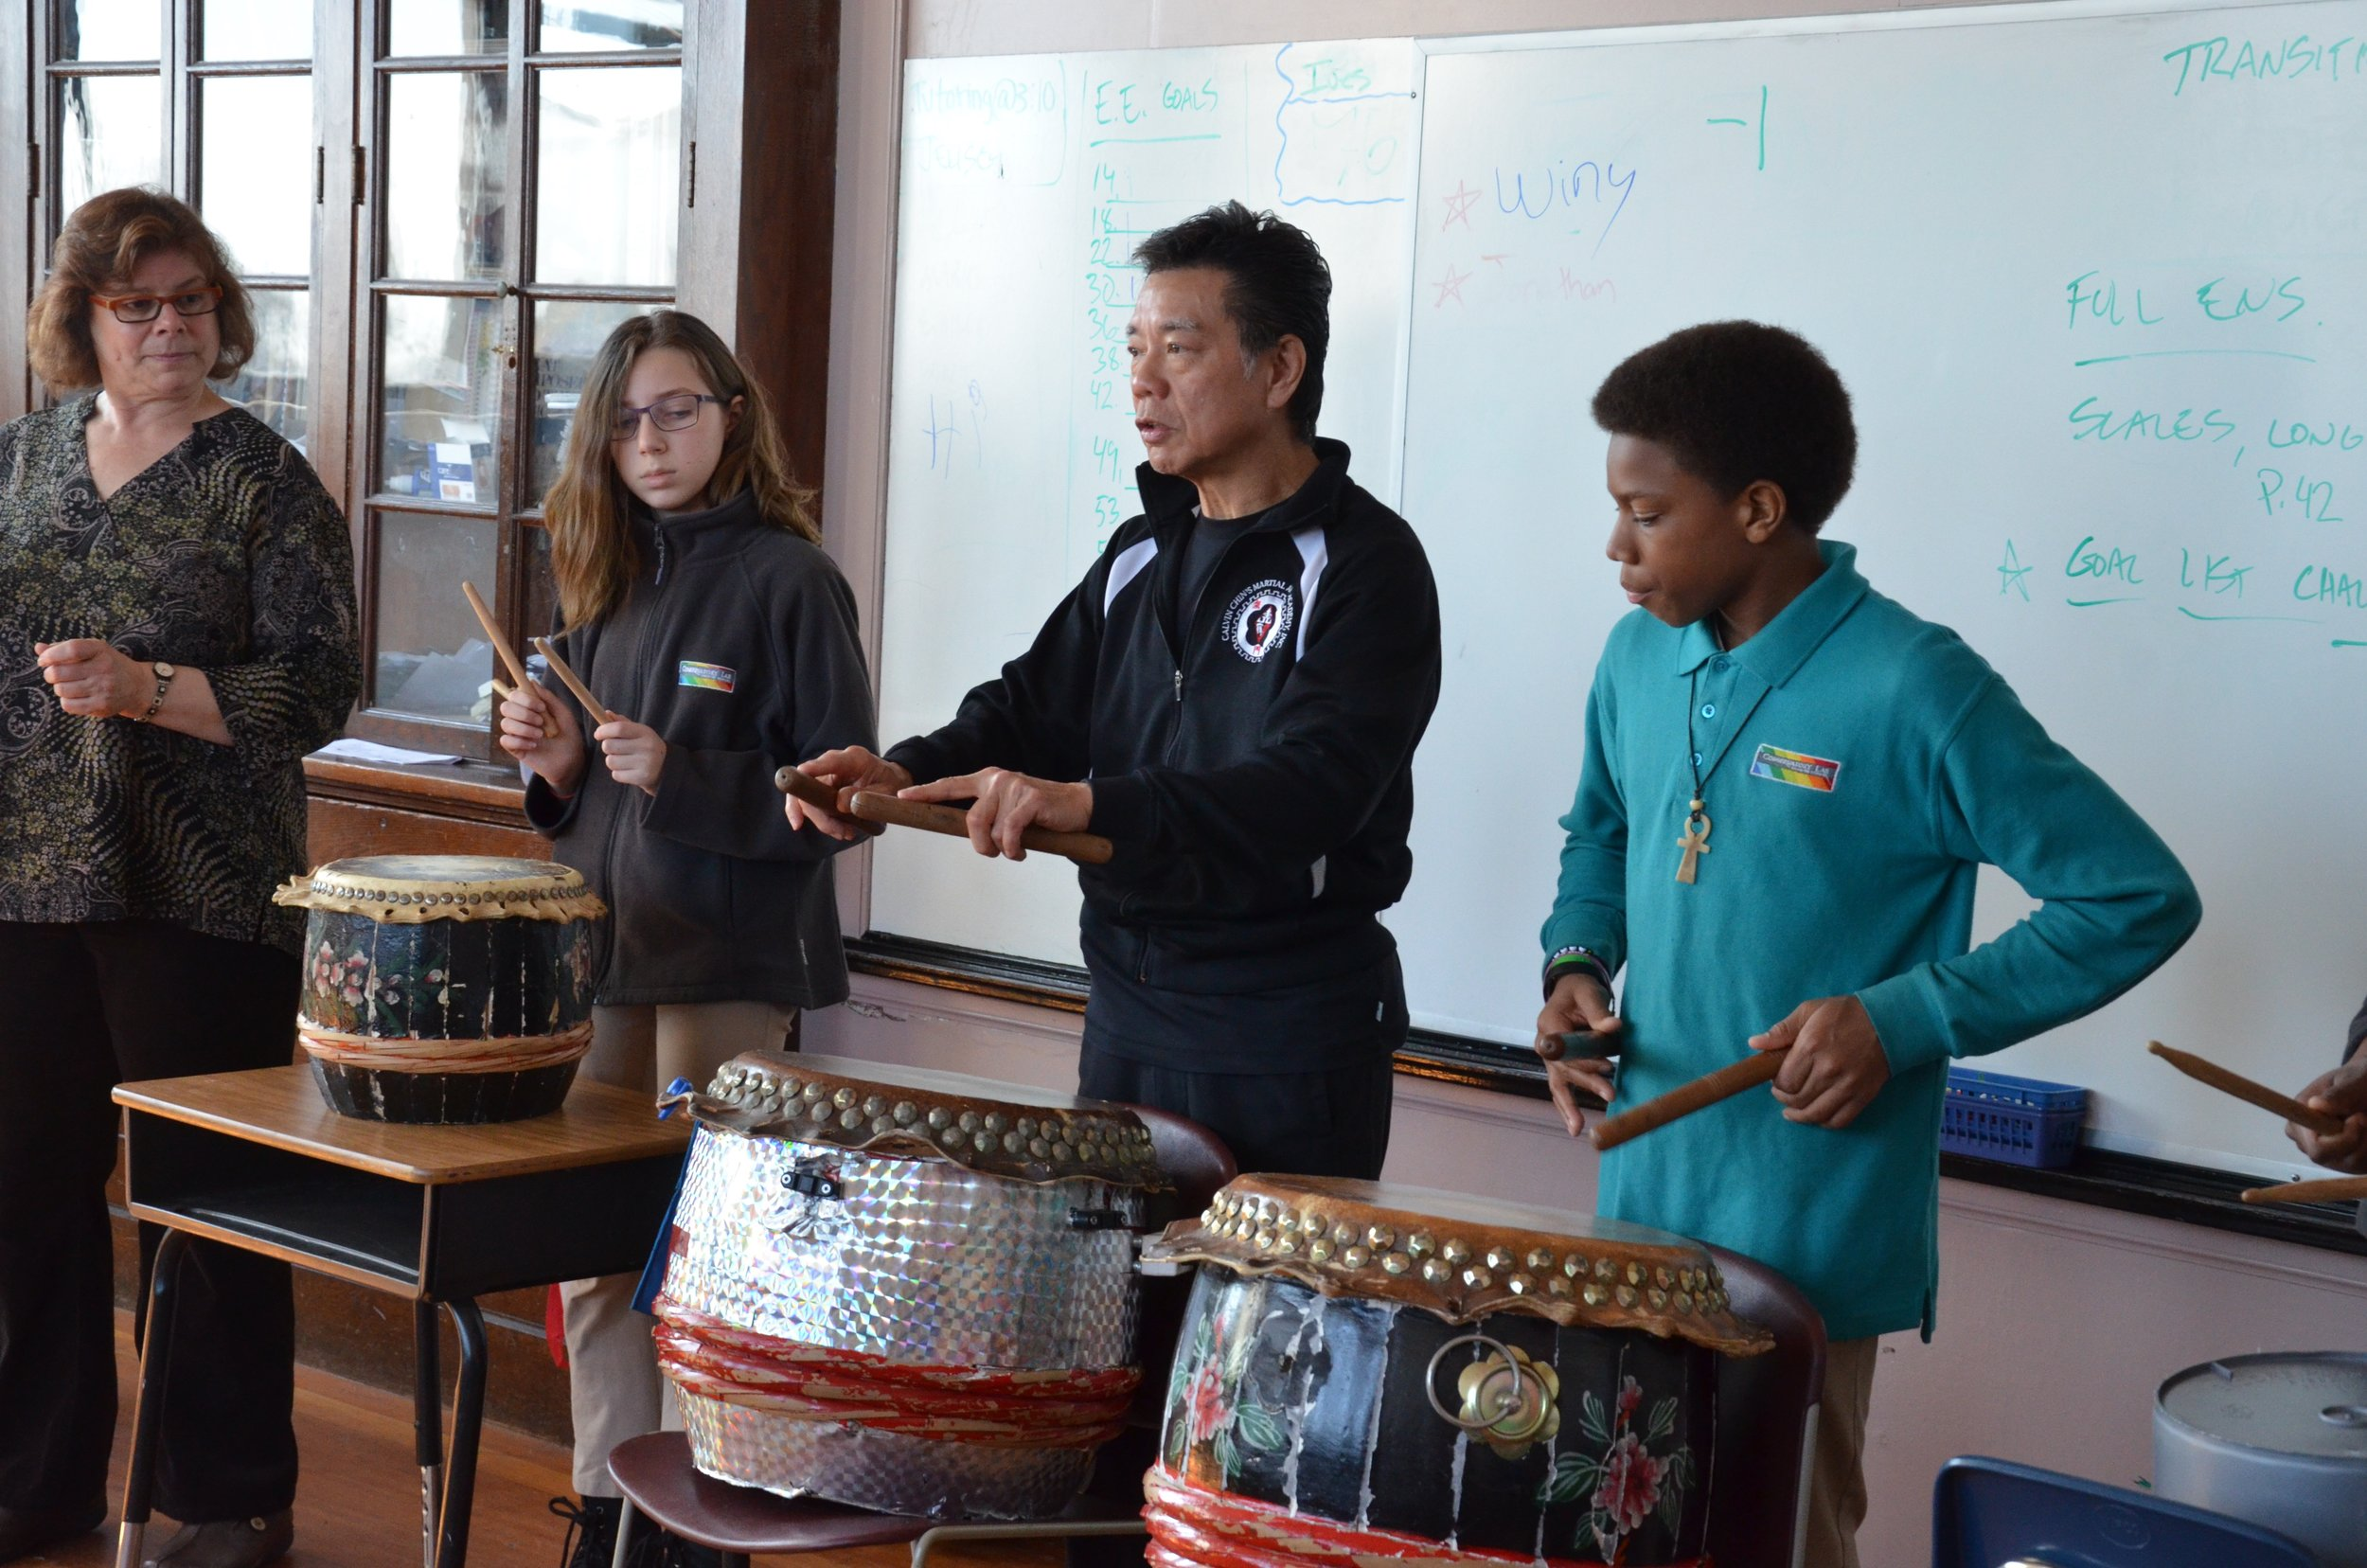 Students learning to play Chinese drums as part of an expedition on China and the Silk Road.